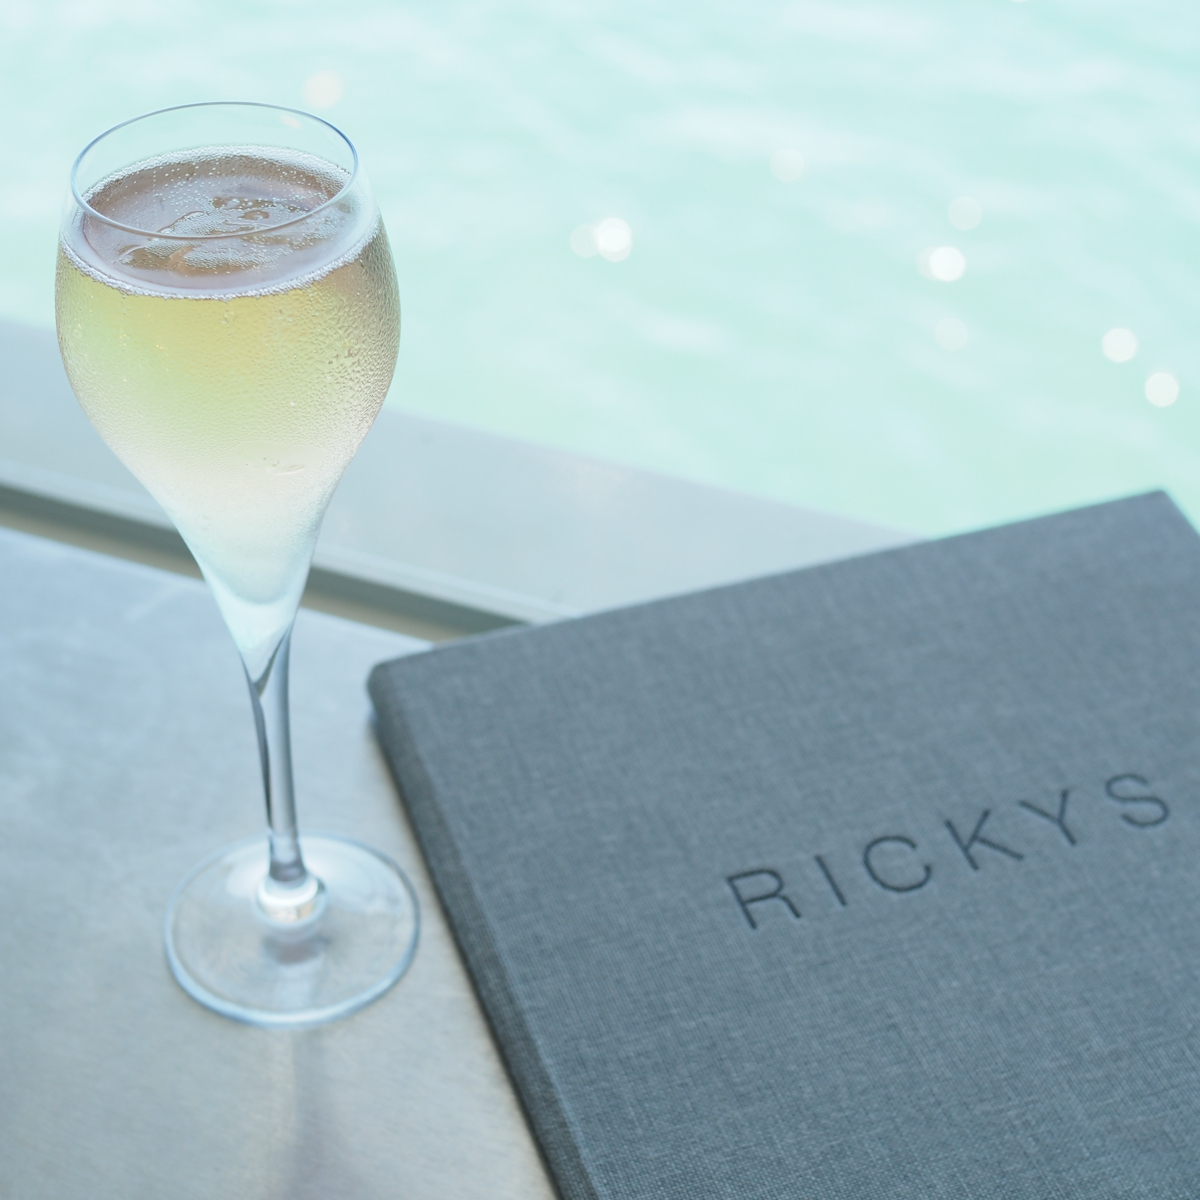 Rickys Restaurant Noosa | 7 things not to miss when you next visit Noosa